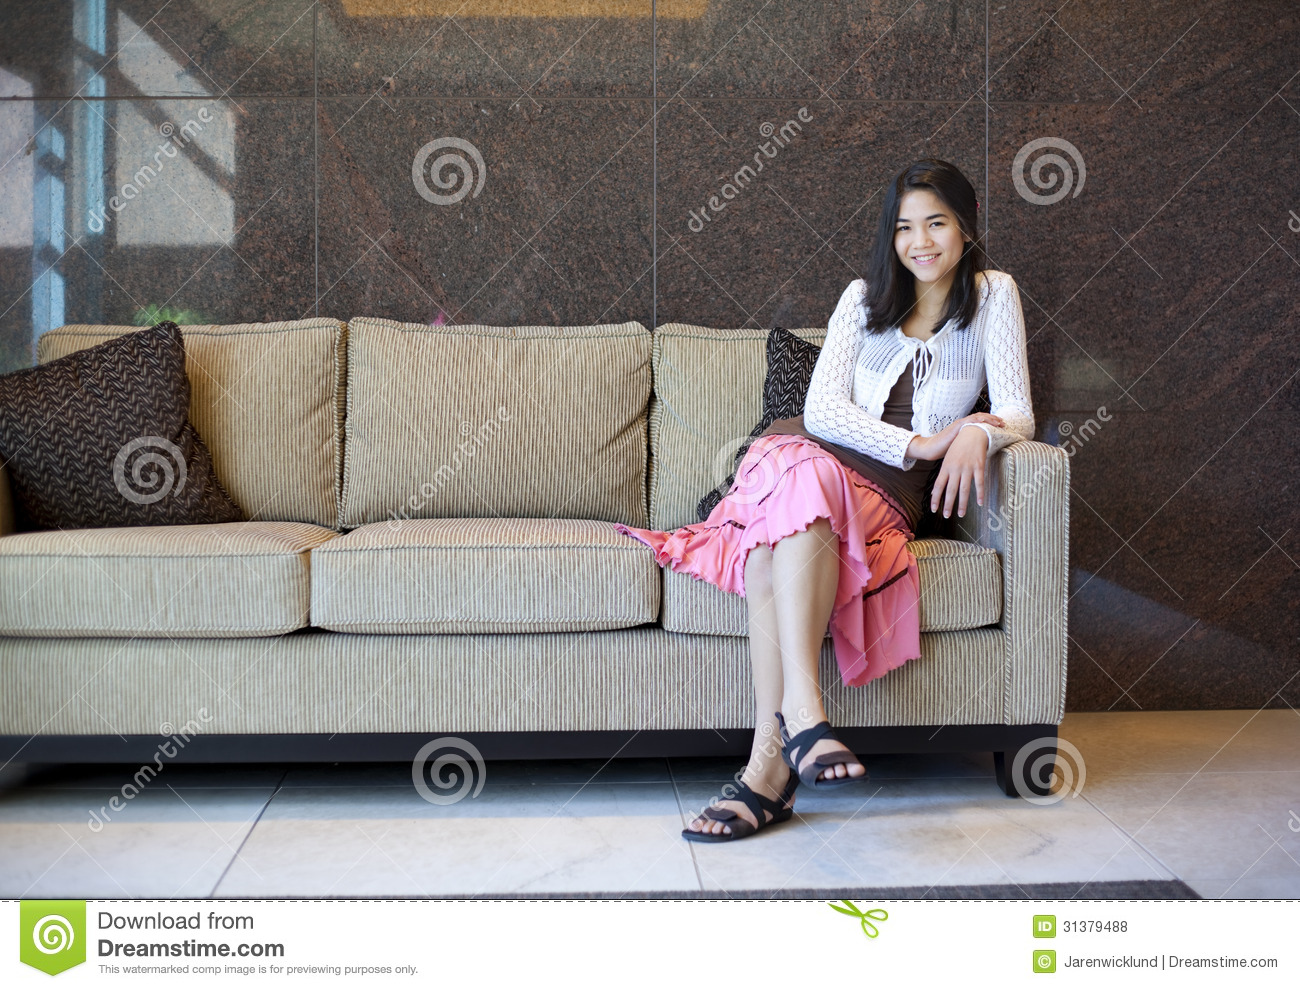 Young teen girl resting on an elegant couch